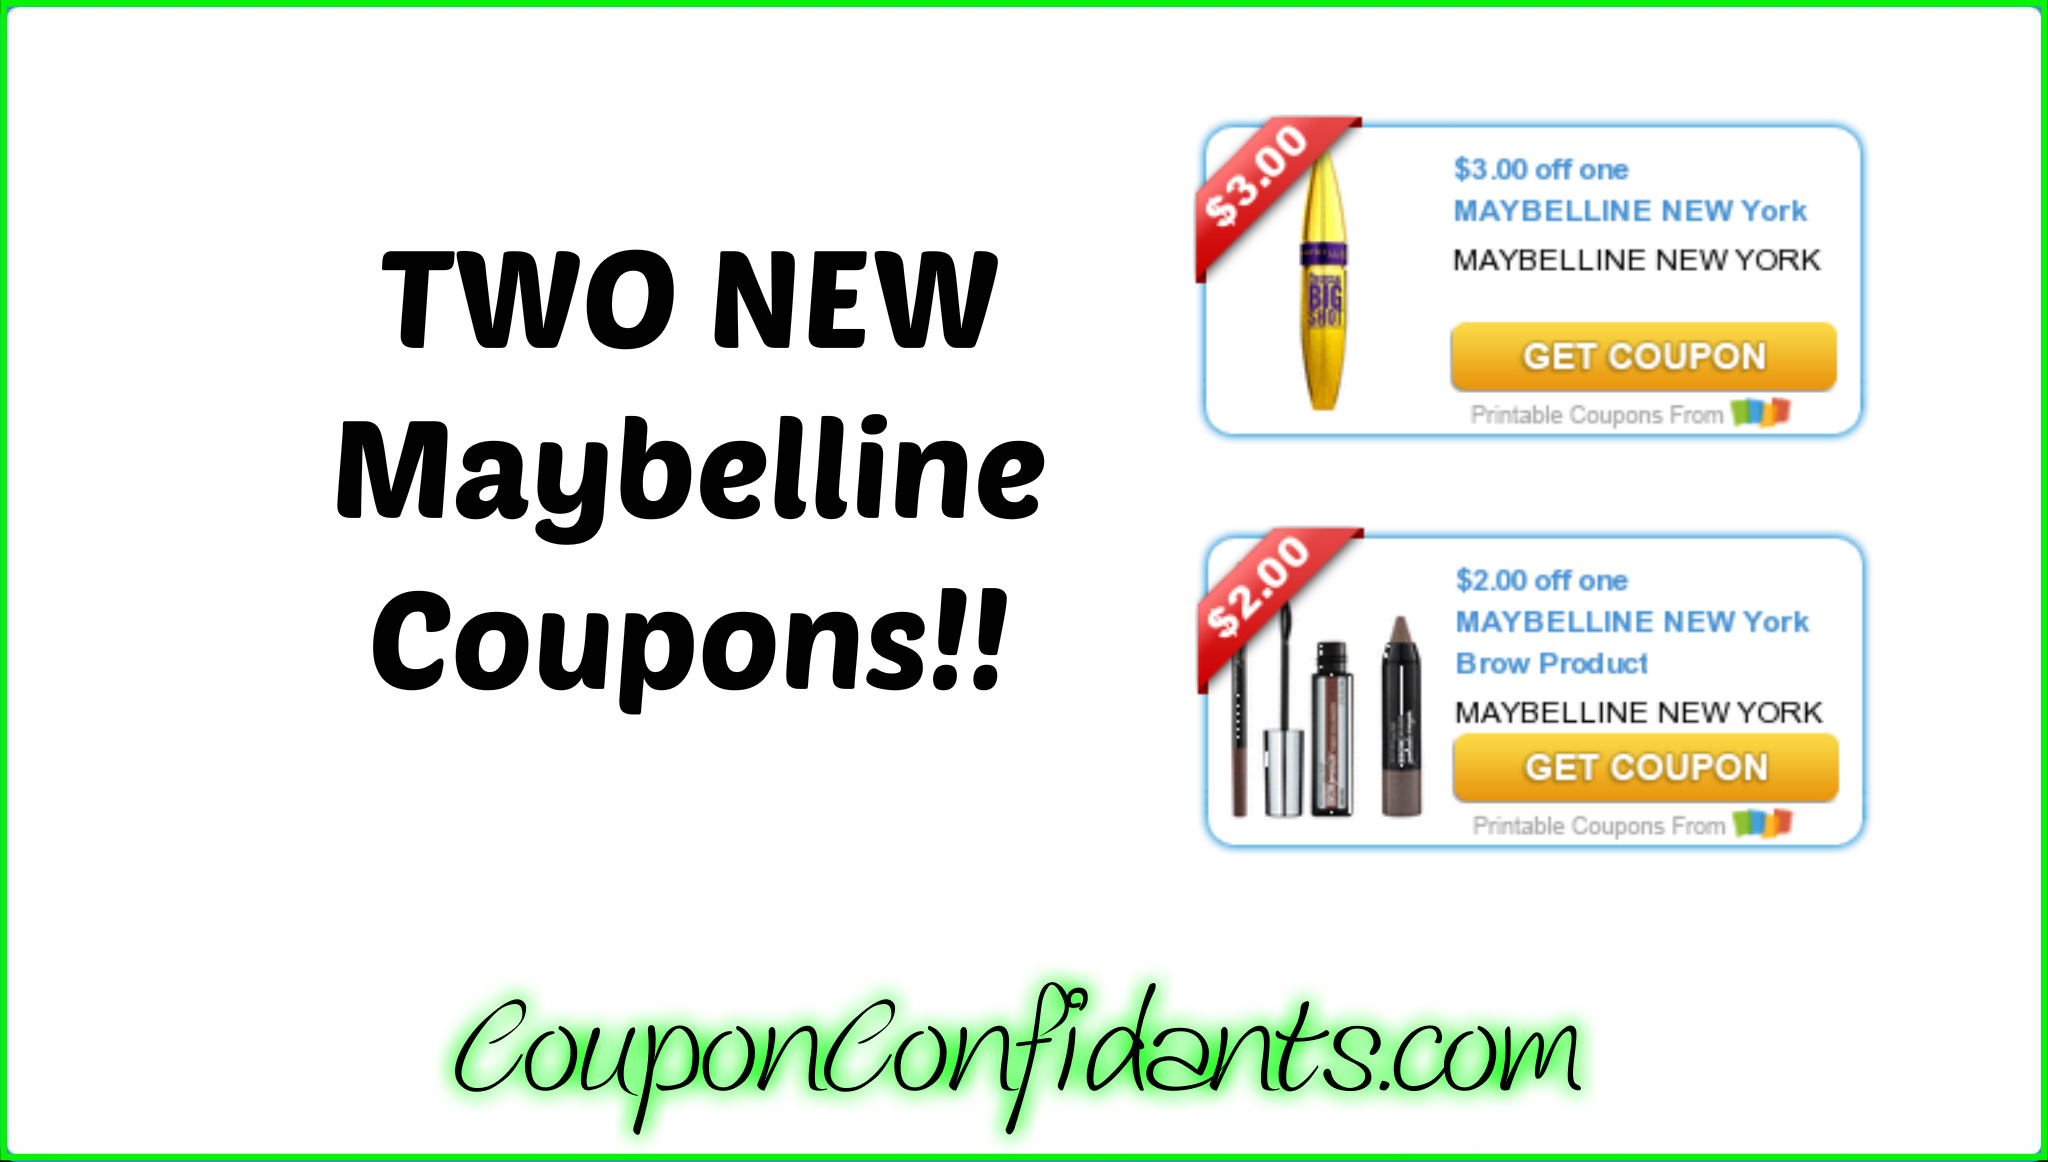 photograph relating to Maybelline Coupons Printable referred to as Refreshing Maybelline Discount codes toward stack with the long run Concentrate